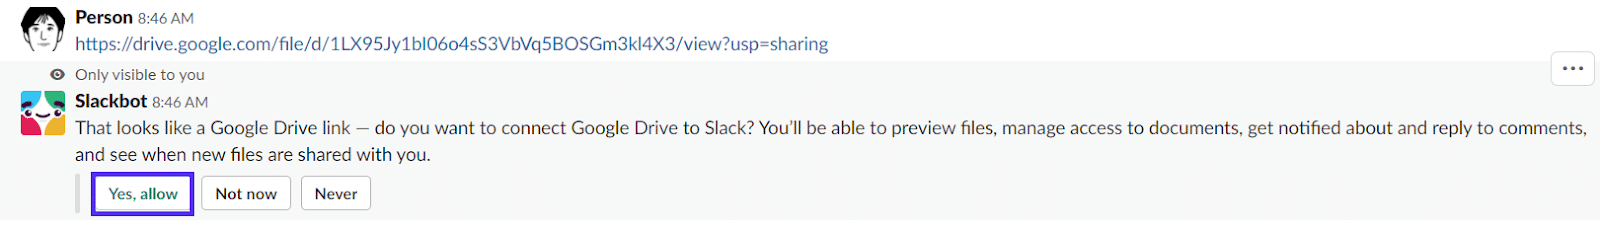 google docs slack integration